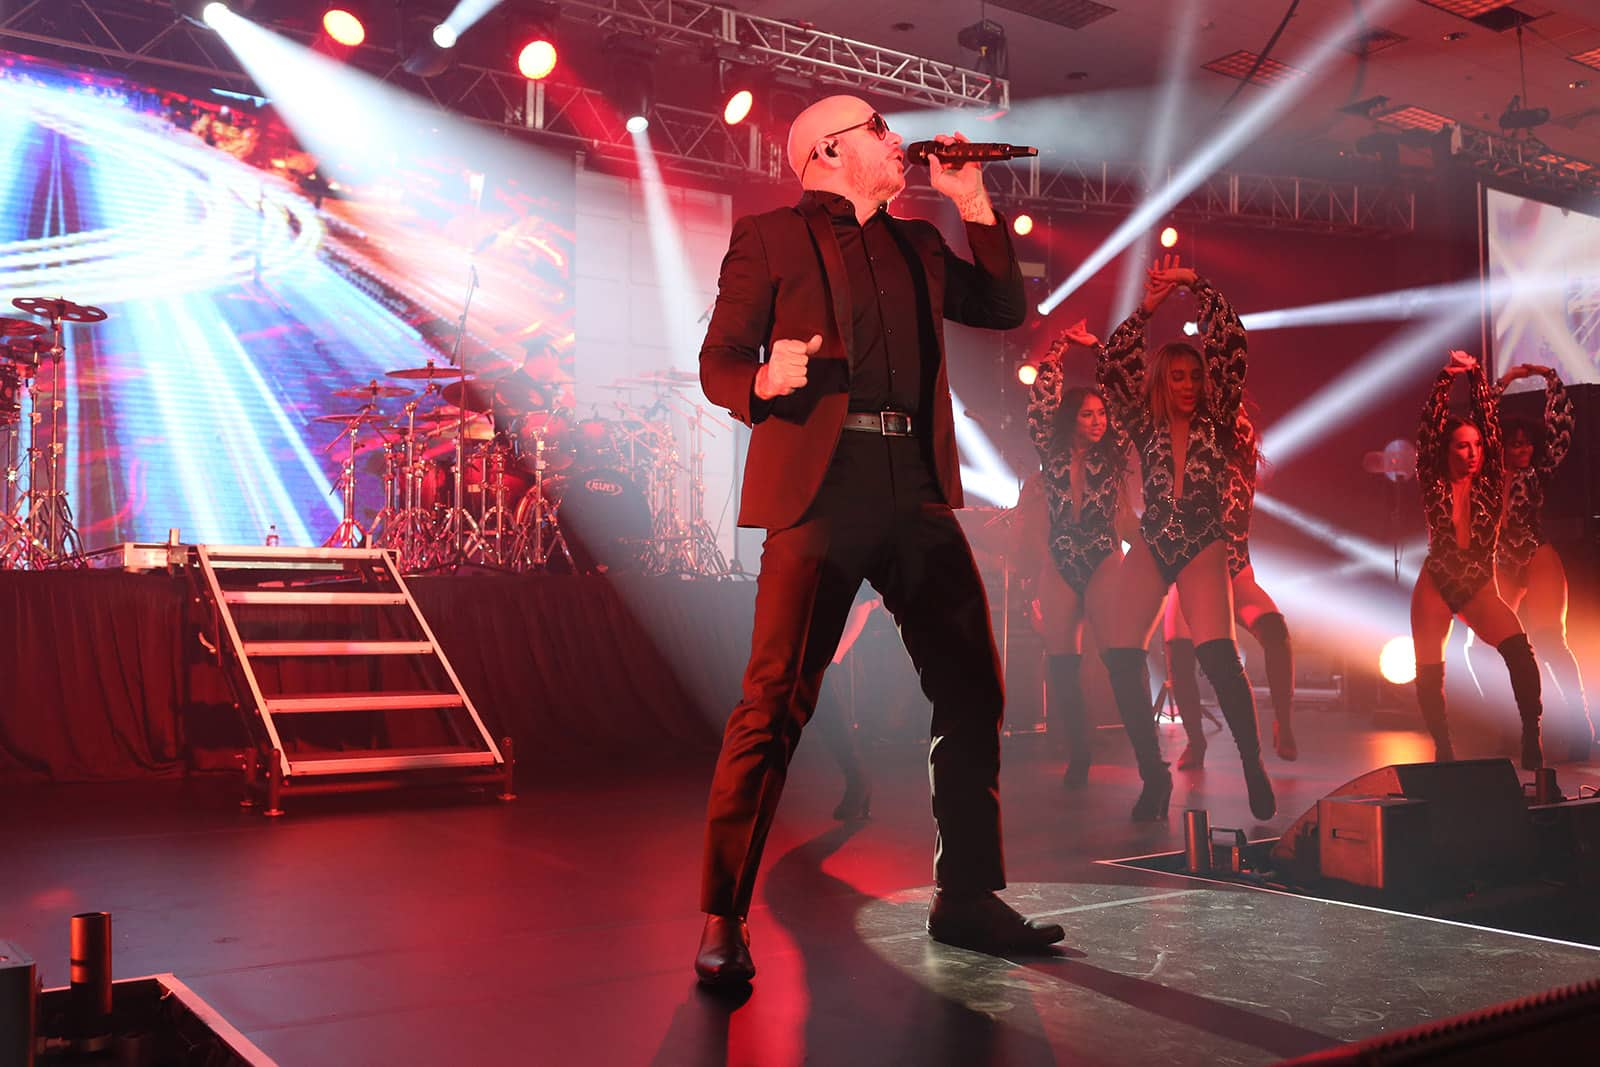 Pitbull Performs at CruiseWorld 2018 Event Hosted by Norwegian